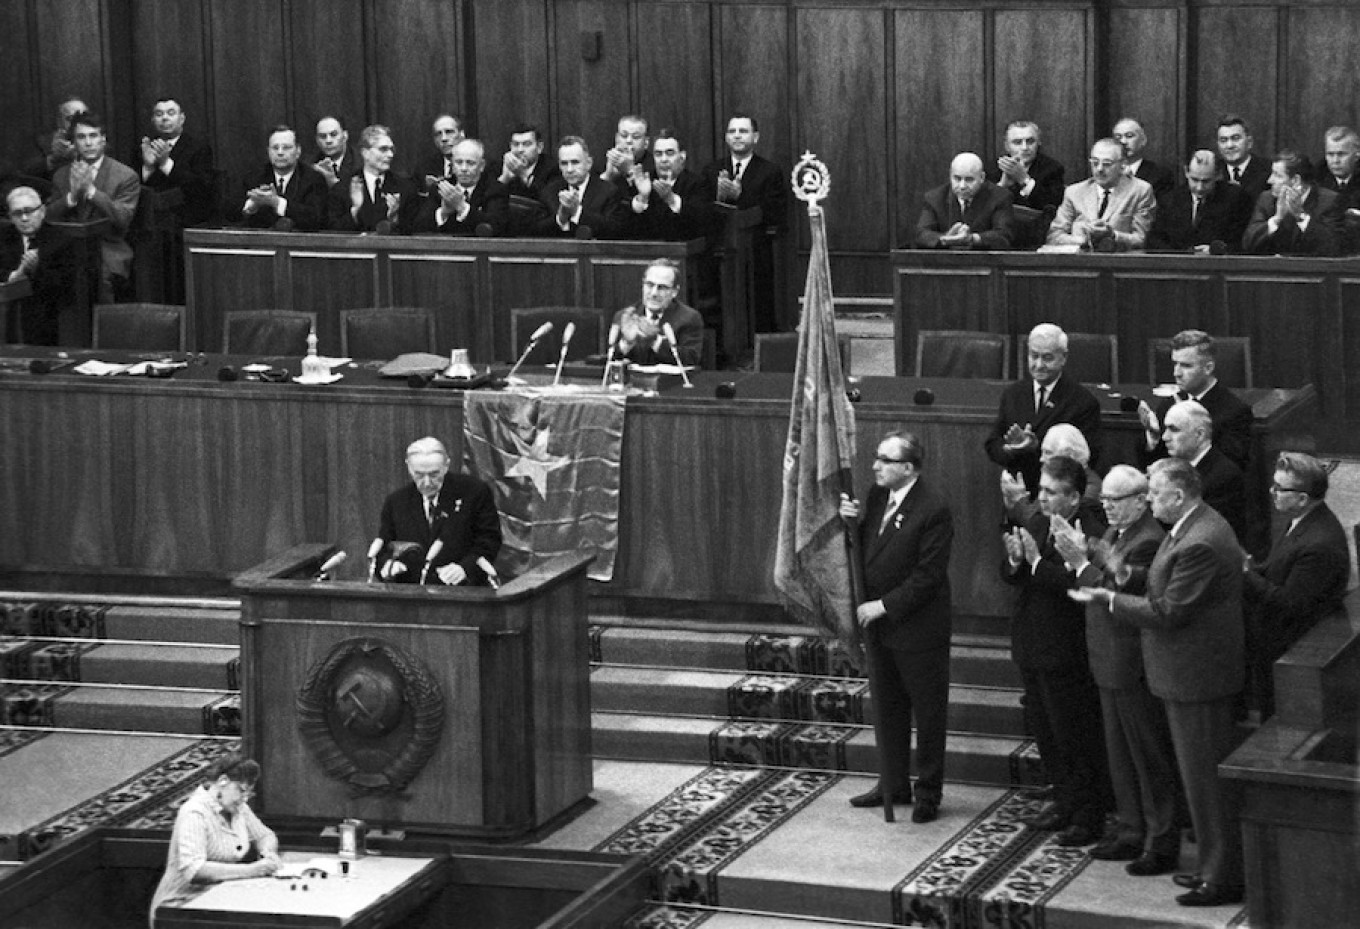 First secretary of the Soviet Writers Union Konstantin Fedin makes a speech at the fourth Congress of Soviet Writers in Moscow, May 26, 1967. TASS